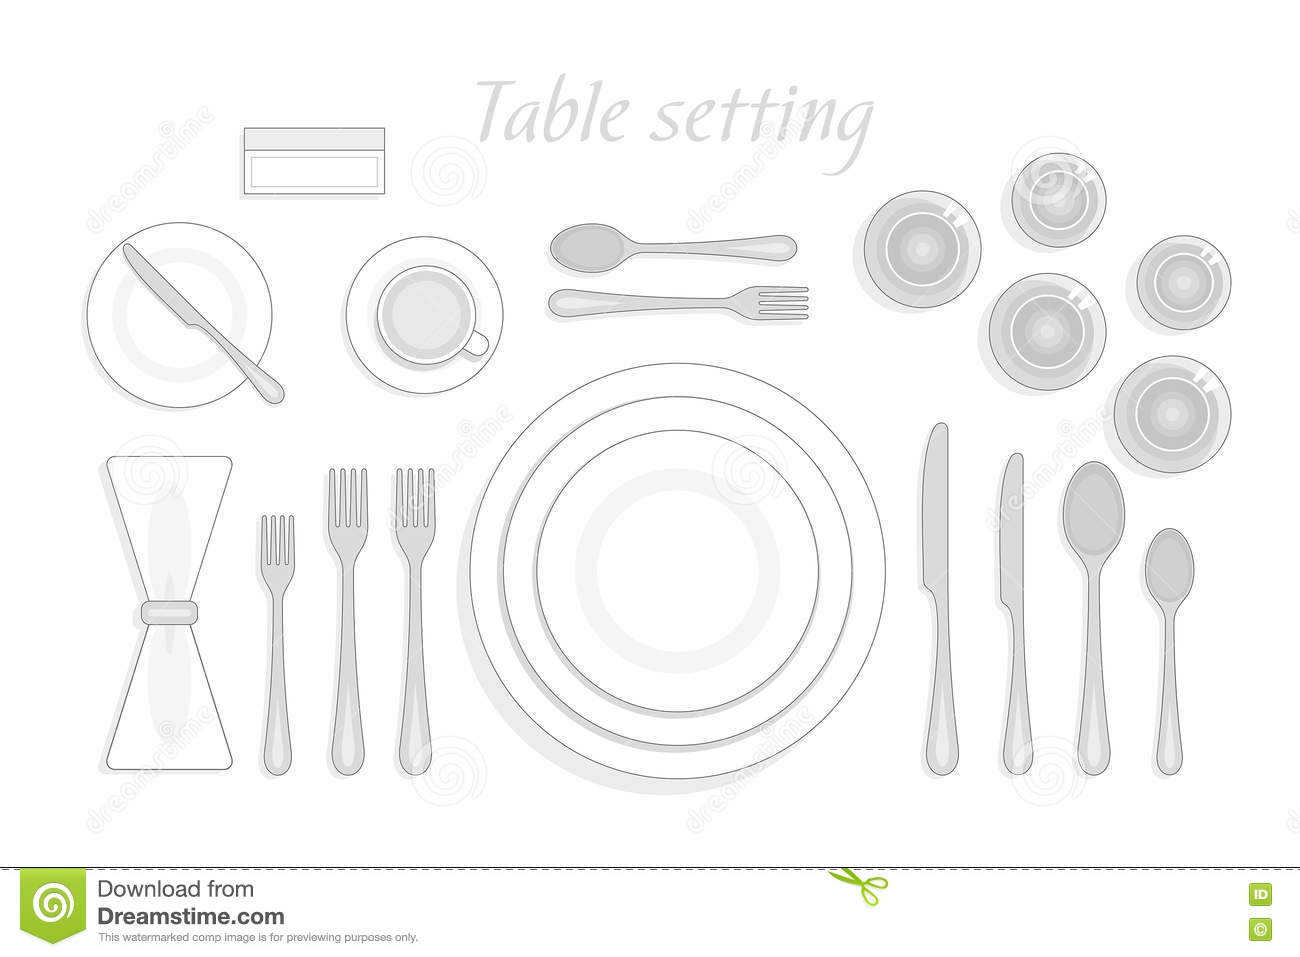 Top Ten Table Manners ...  sc 1 st  Castrophotos & Setting Cutlery On Table Formal - Castrophotos